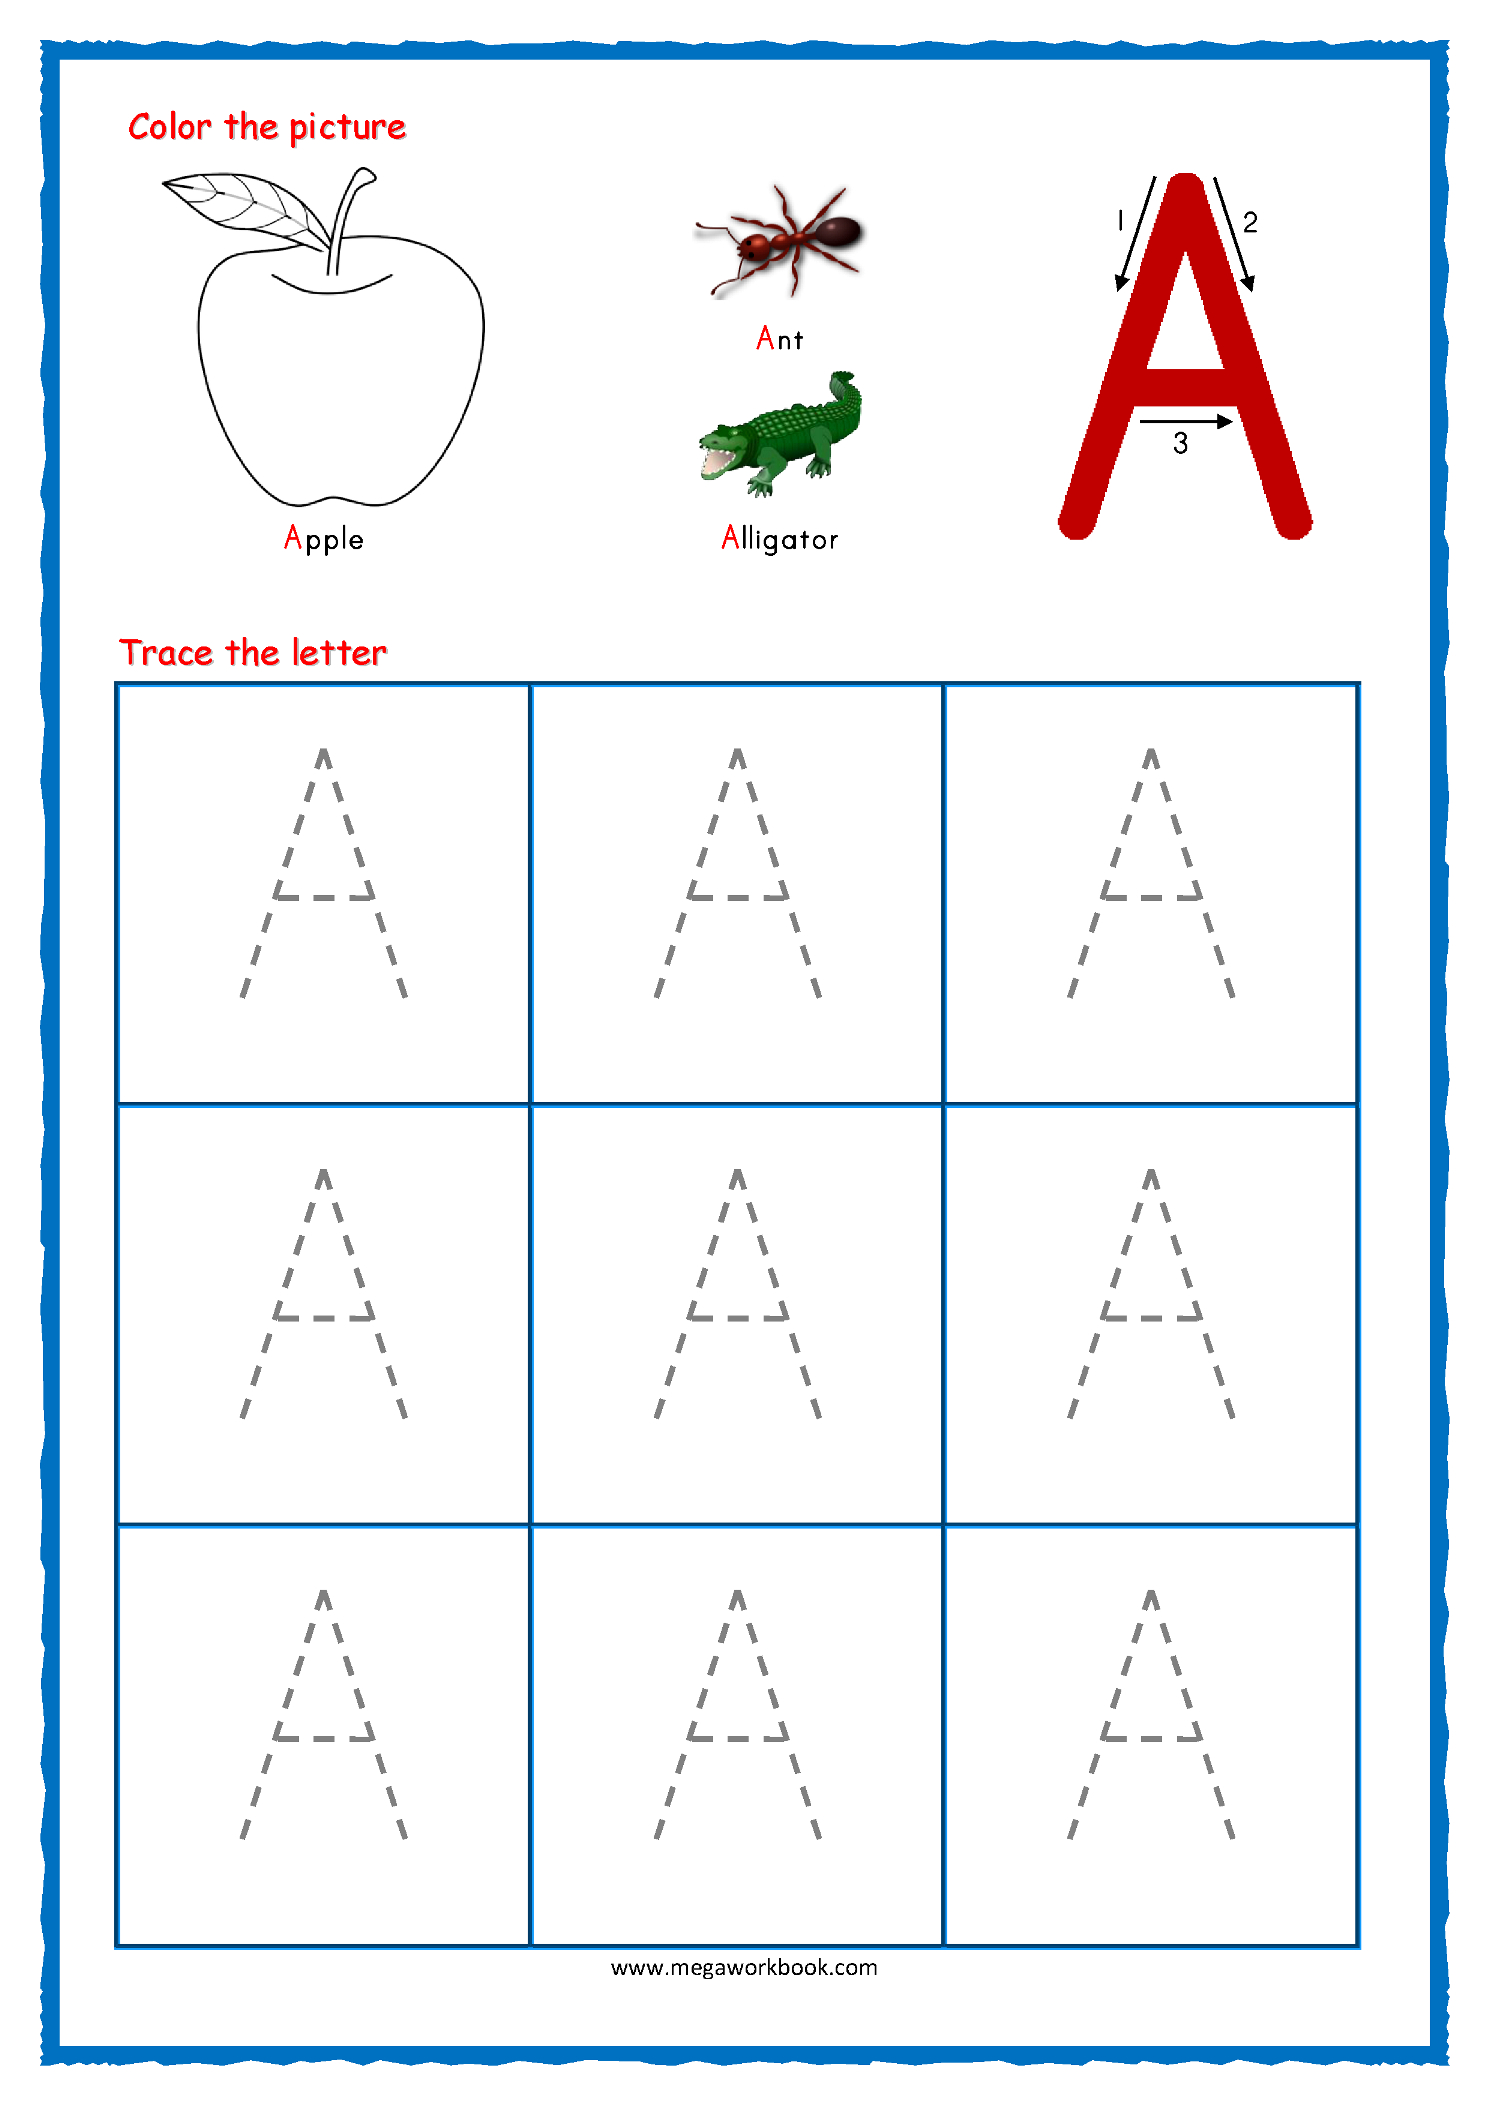 Tracing Letters - Alphabet Tracing - Capital Letters with Preschool Tracing Worksheets Letters